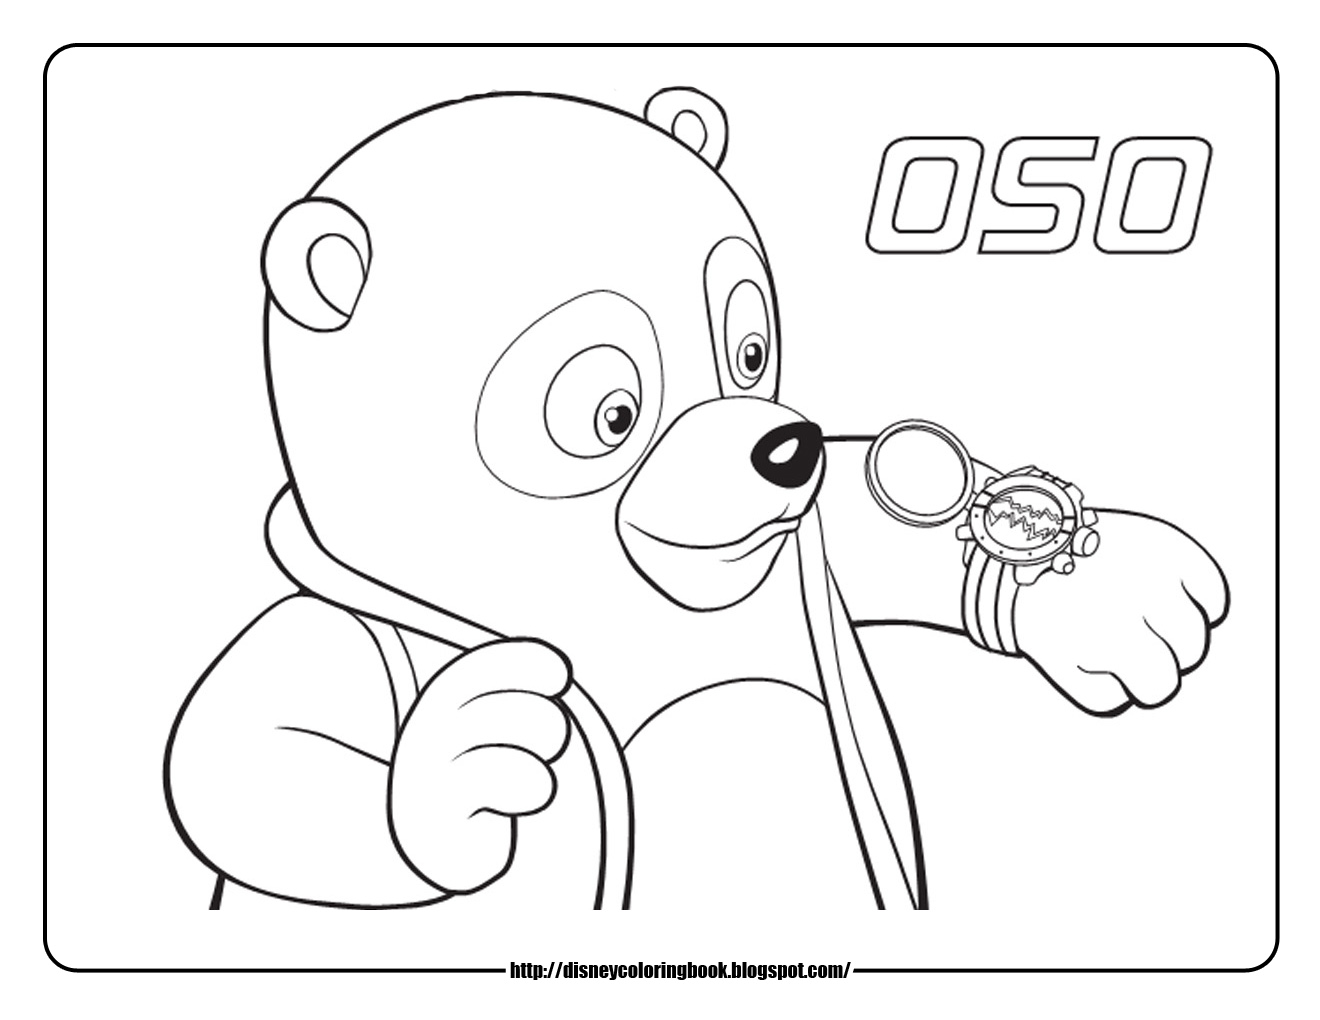 1320x1020 Disney Junior Coloring Pages Special Agent Oso 1 Free Disney